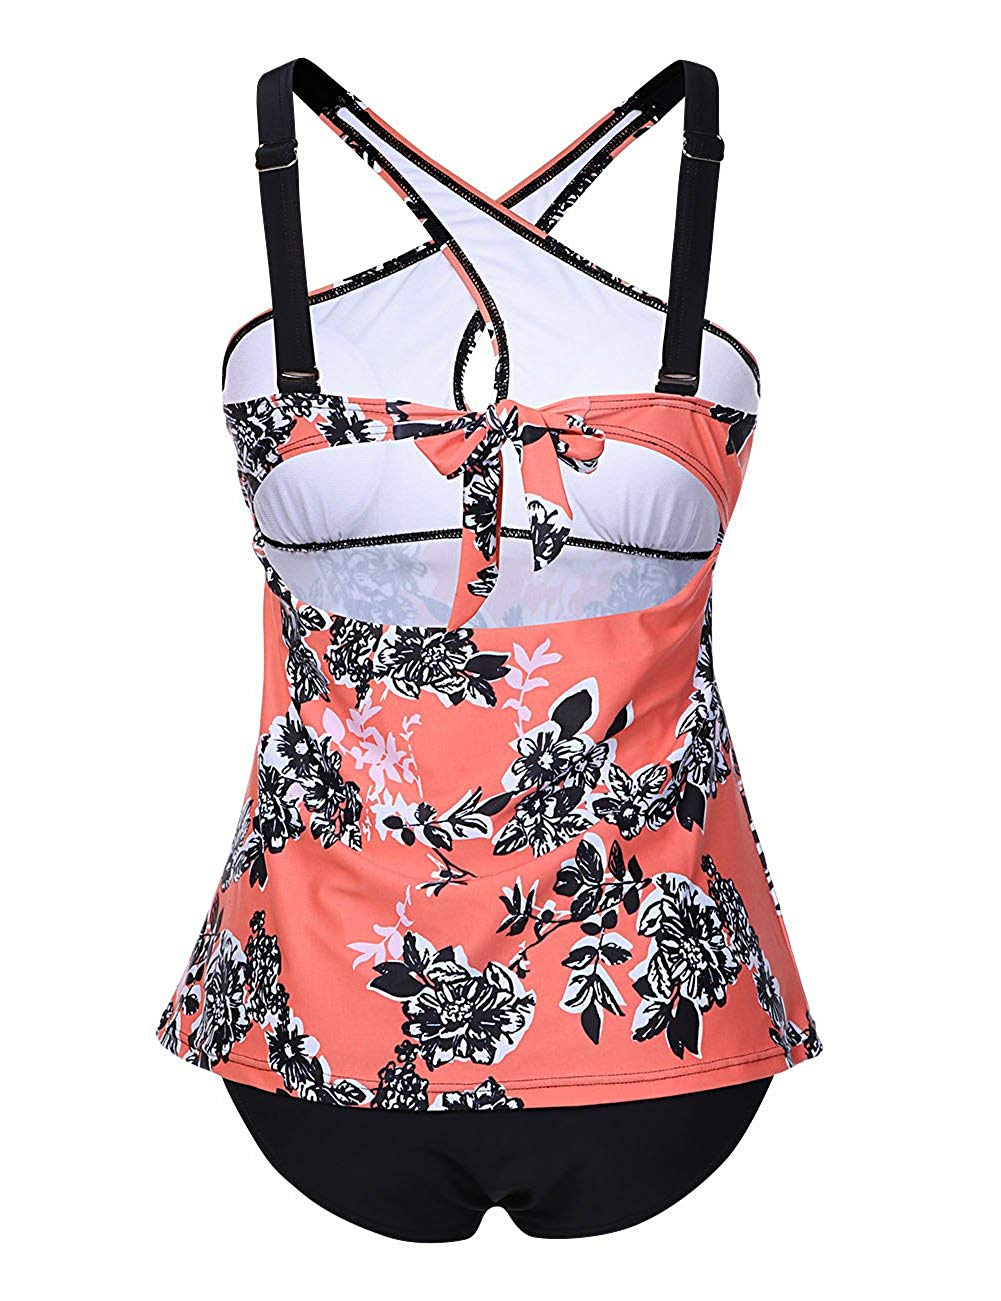 VENDHAUTE Women's Two Pieces Swimsuits Criss Cross Front Padded Tankini Set